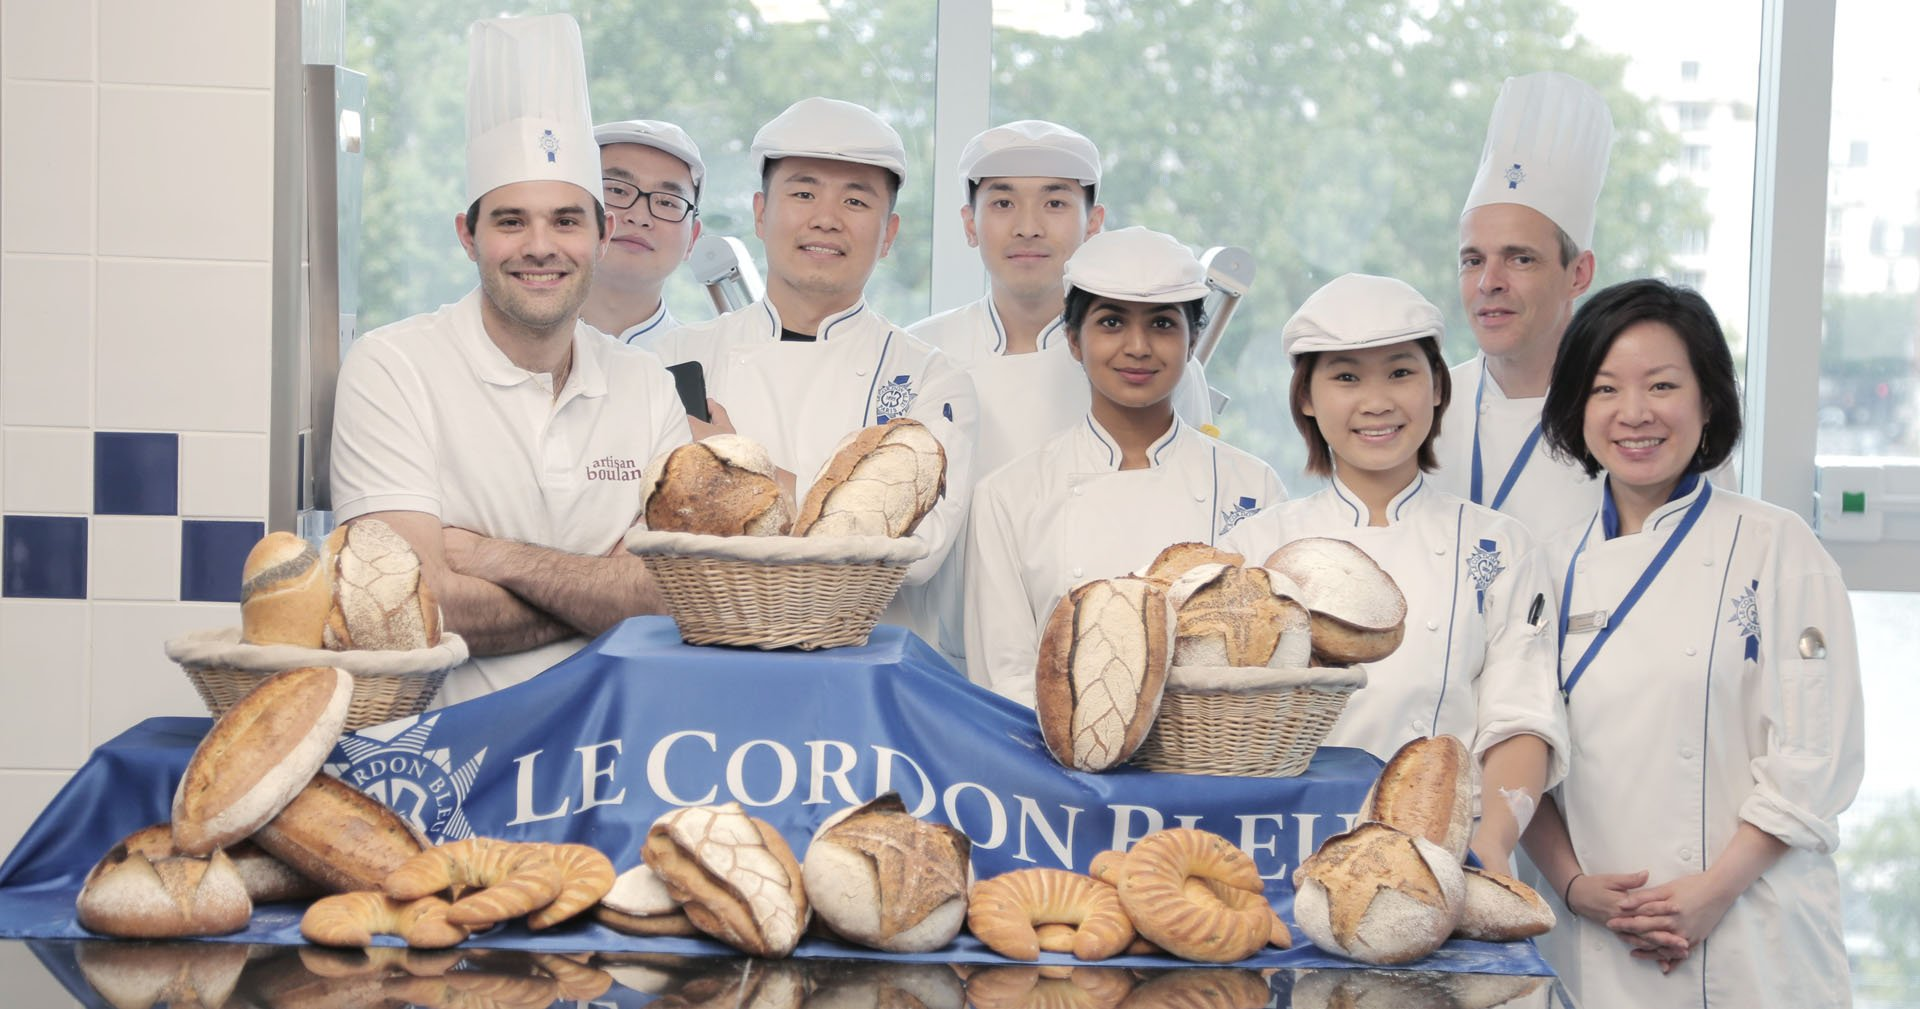 Guest chef Guillaume Felez and the boulangerie students